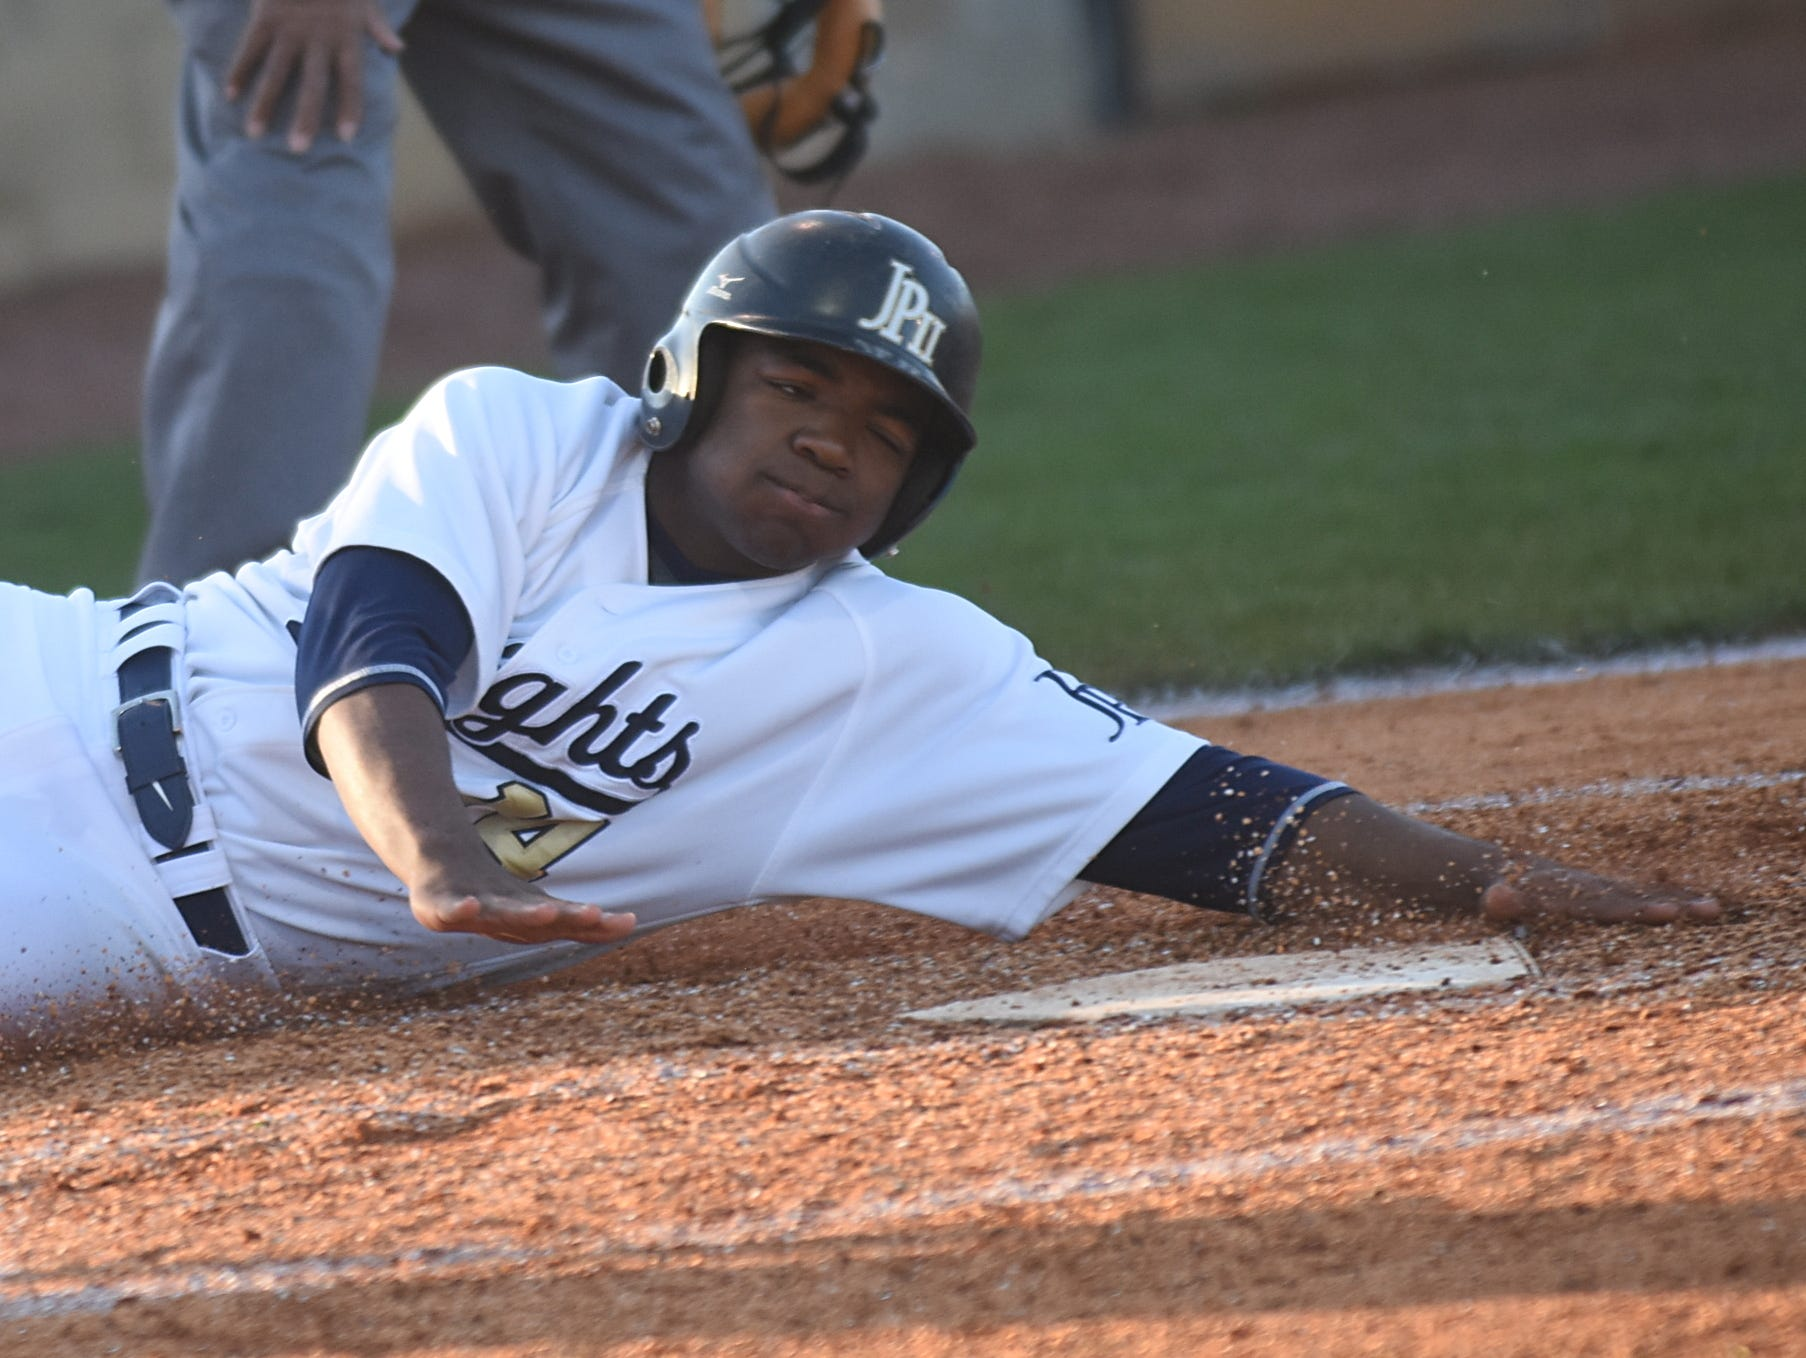 Pope John Paul II High junior C.J. Laws slides into home plate safely during the five-run fourth inning.